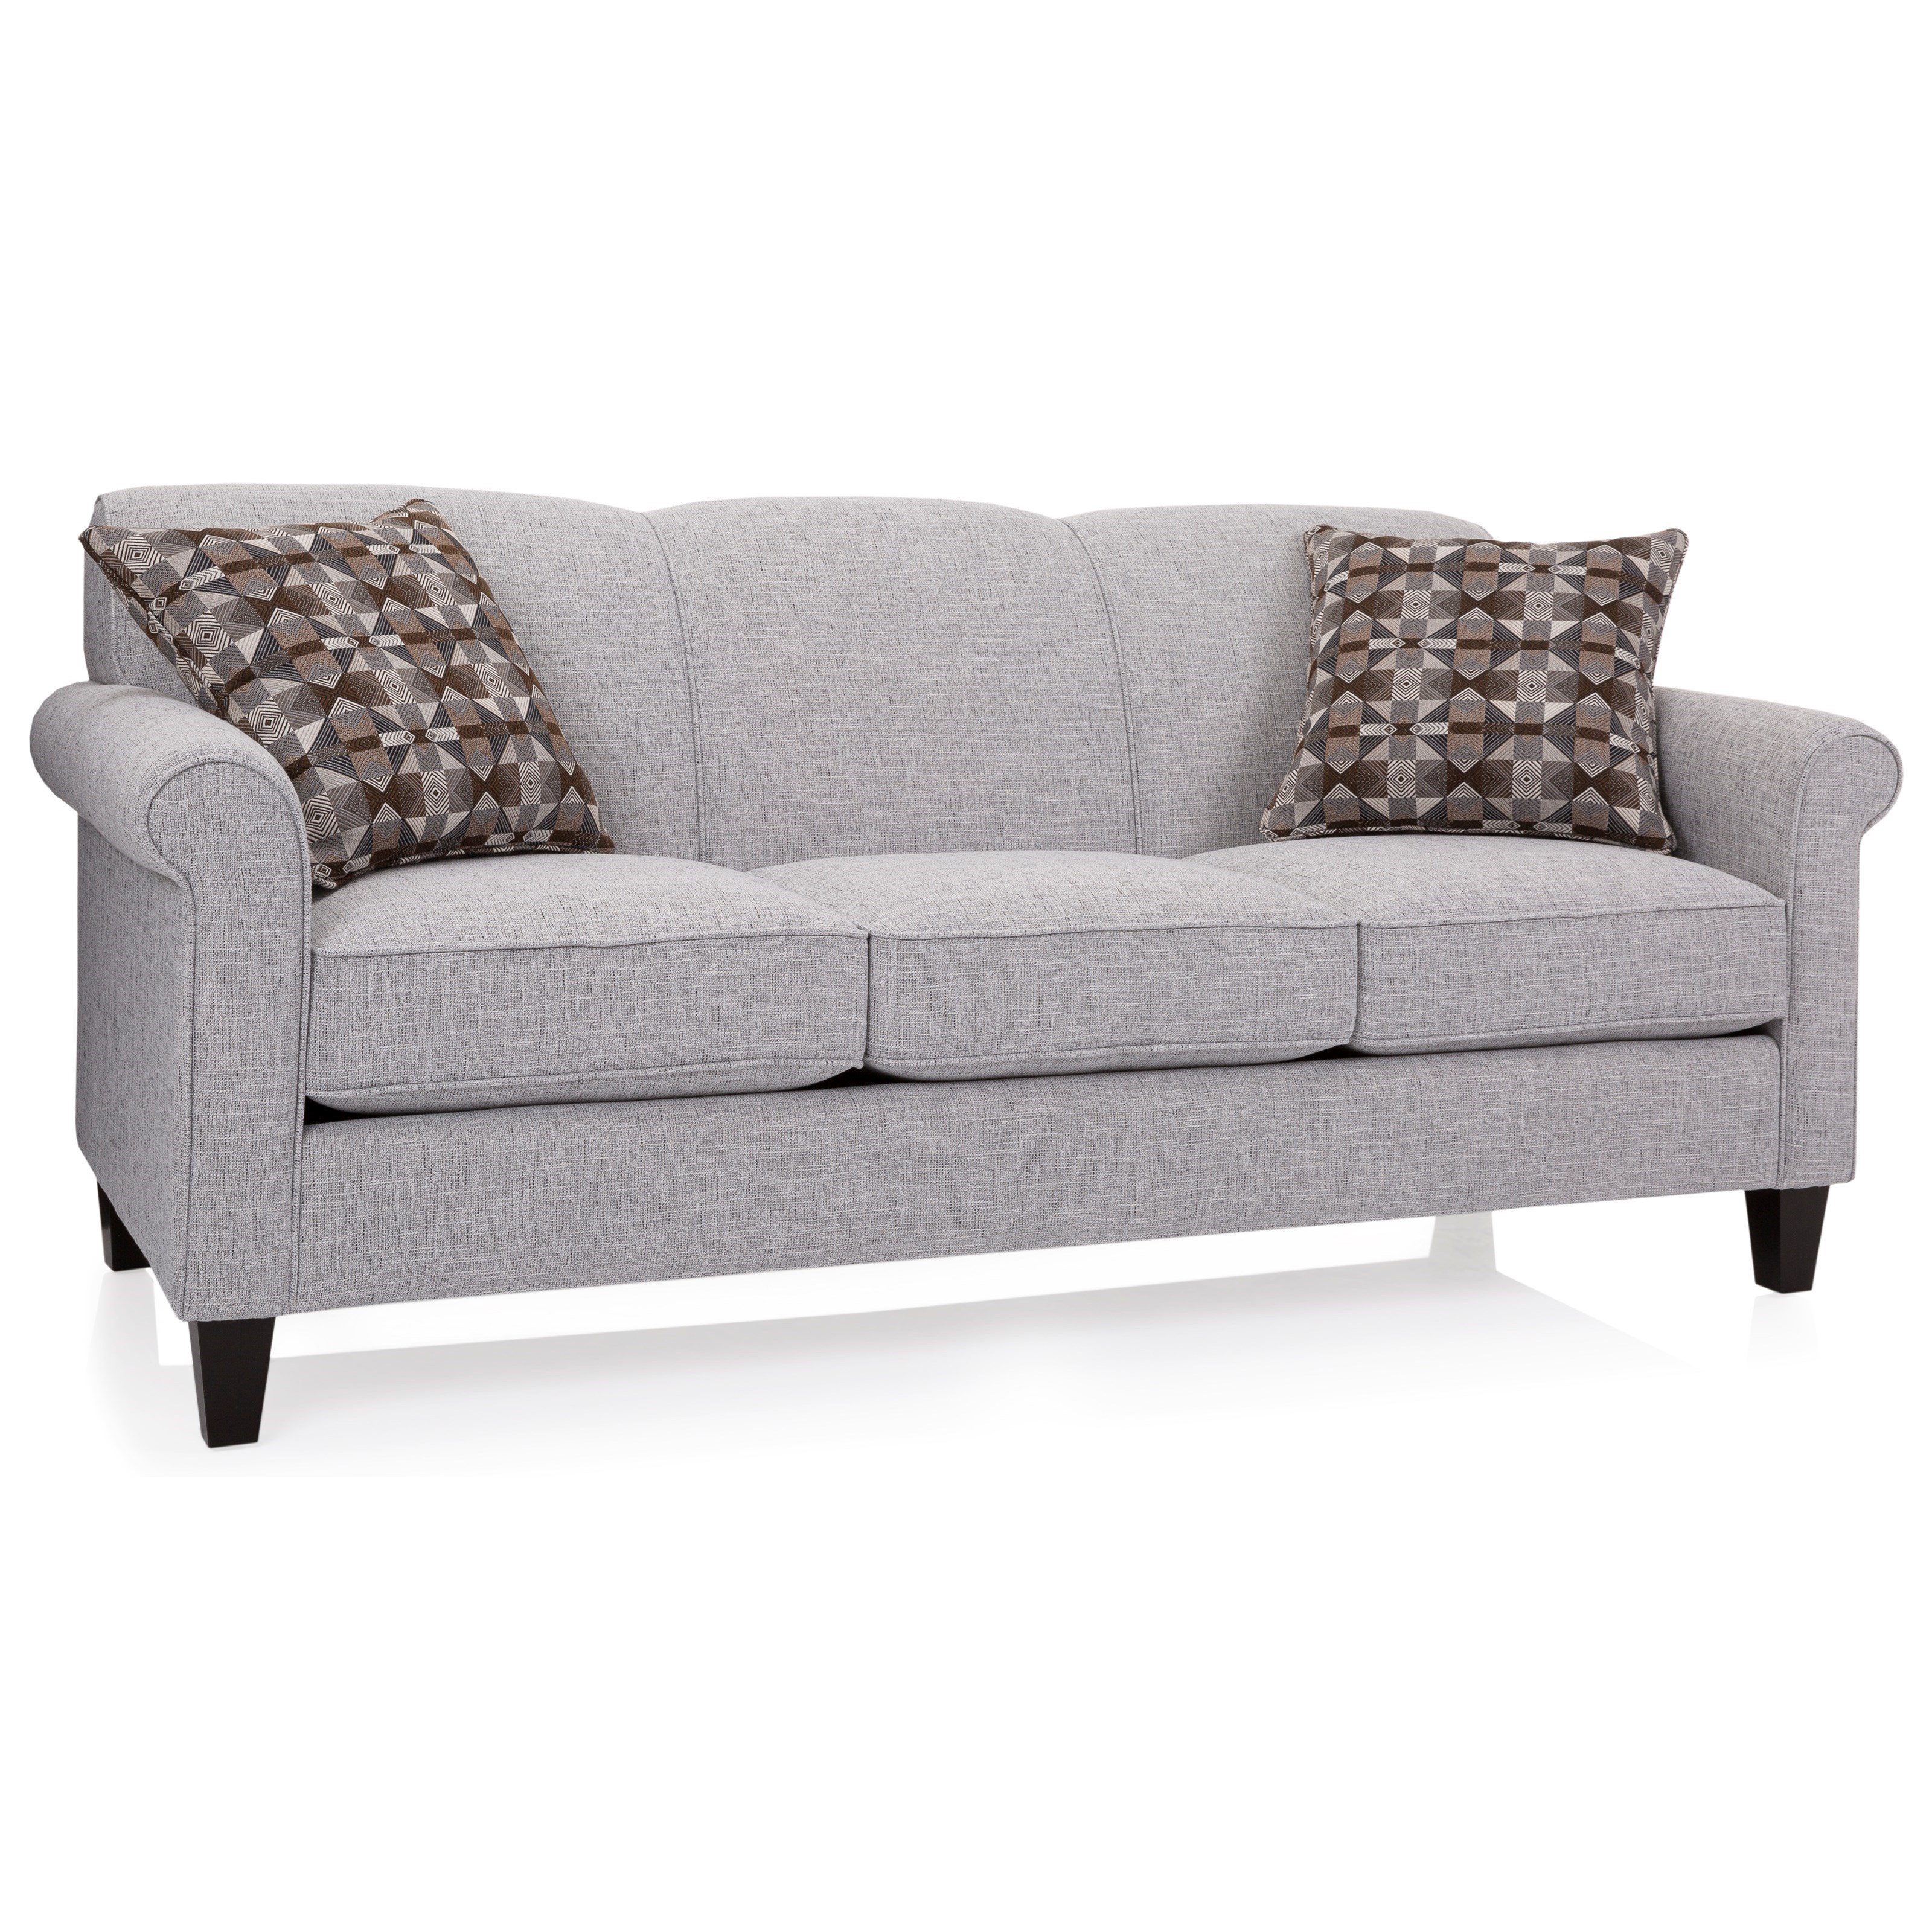 2963 Sofa by Decor-Rest at Upper Room Home Furnishings